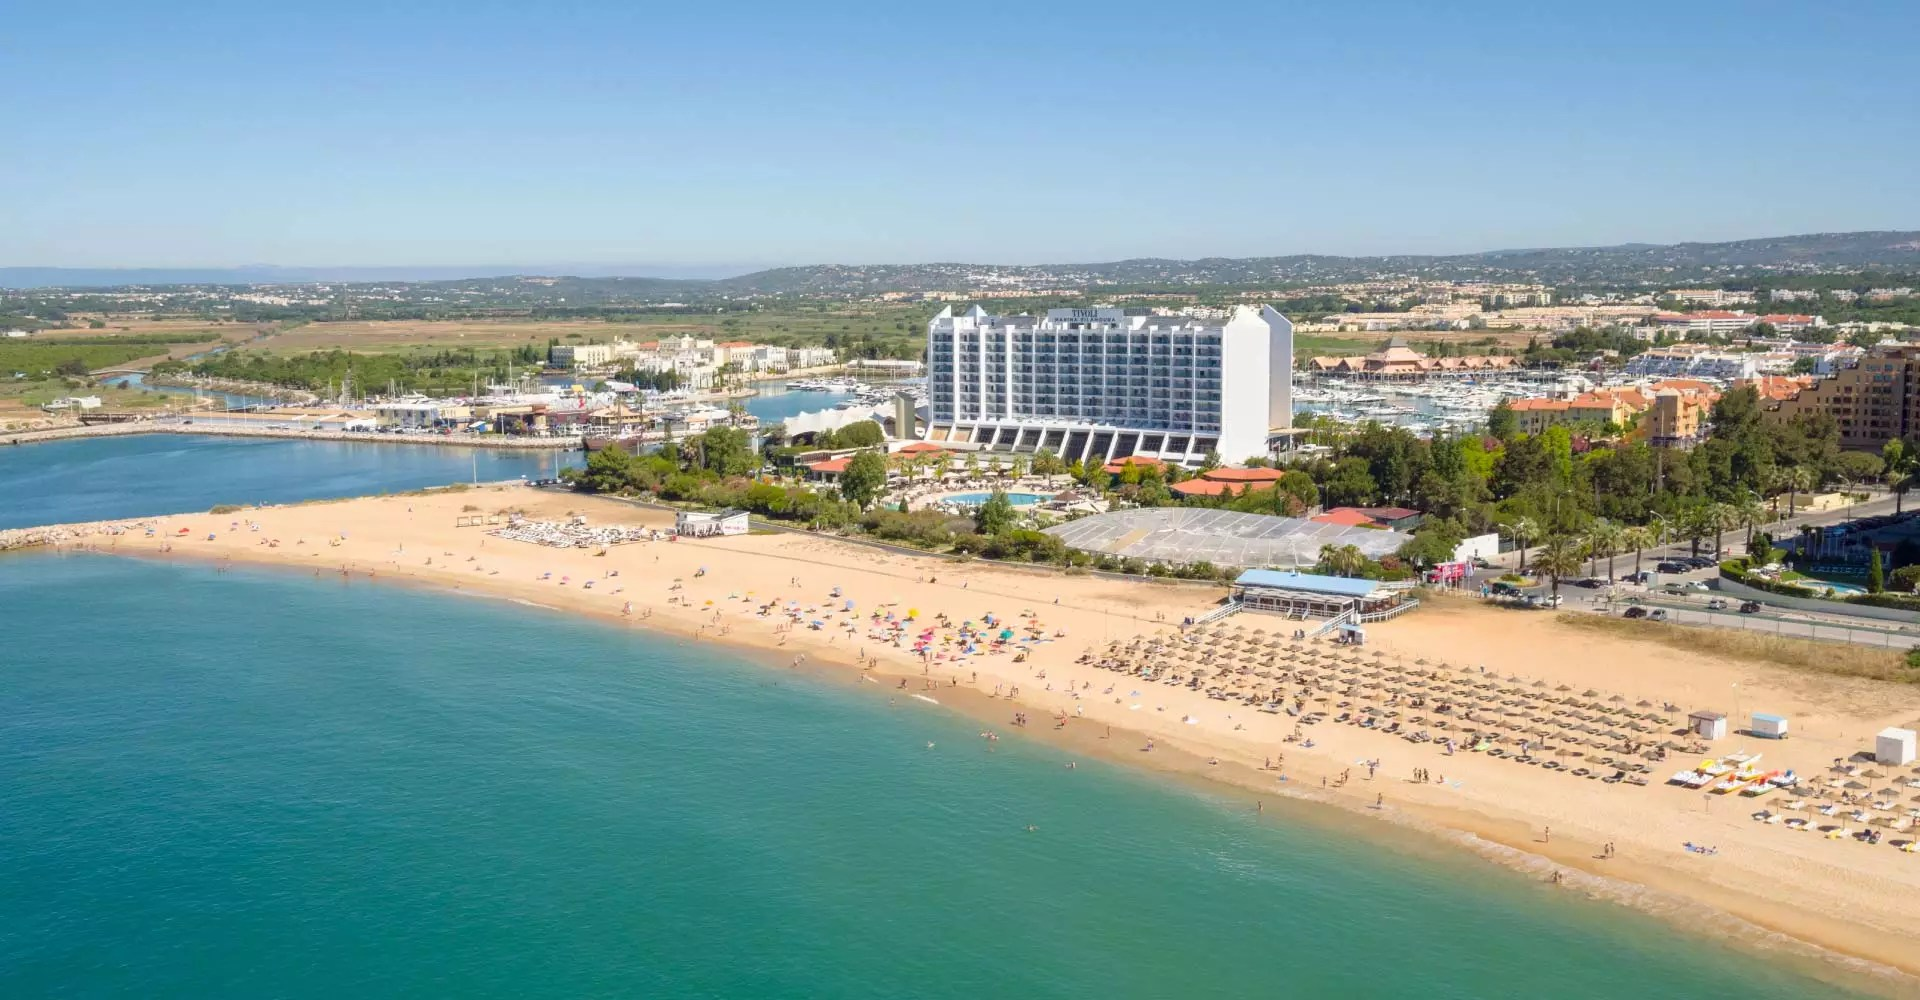 Tivoli Hotels In The Algarve Tivoli Marina Vilamoura Hotel 5 Star Hotel In Vilamoura